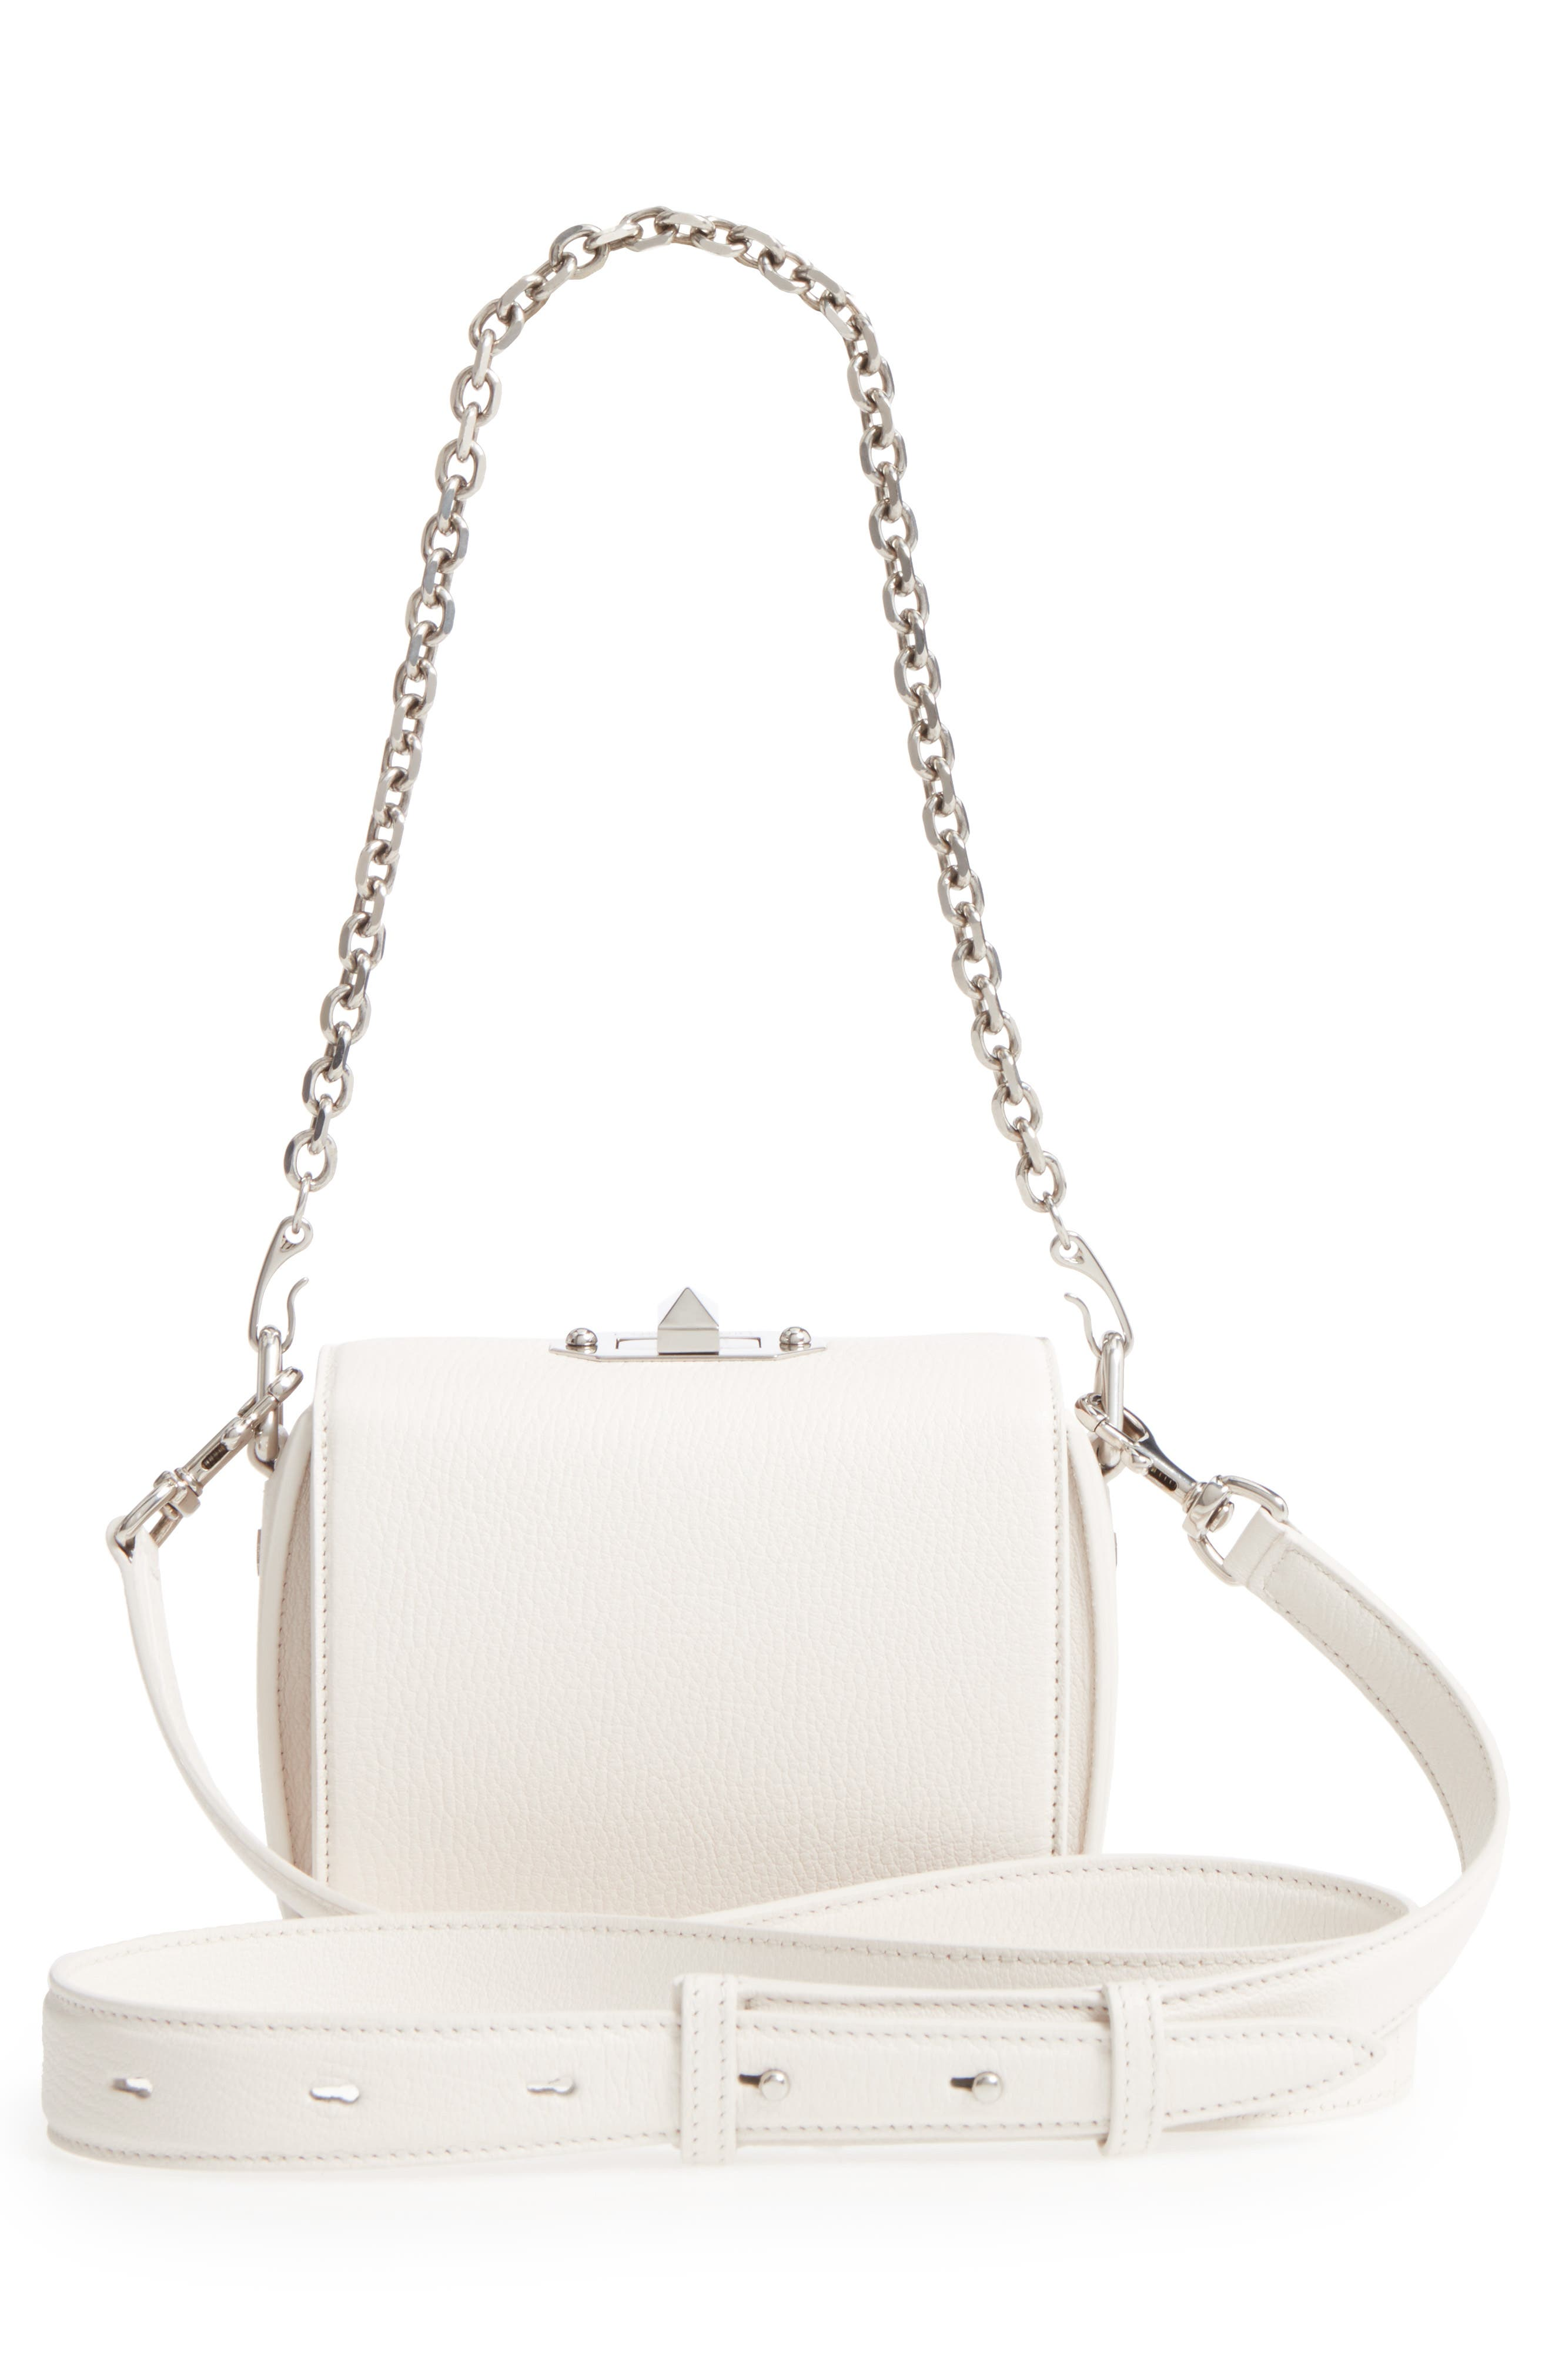 Alternate Image 3  - Alexander McQueen Box Bag 16 Grained Leather Bag